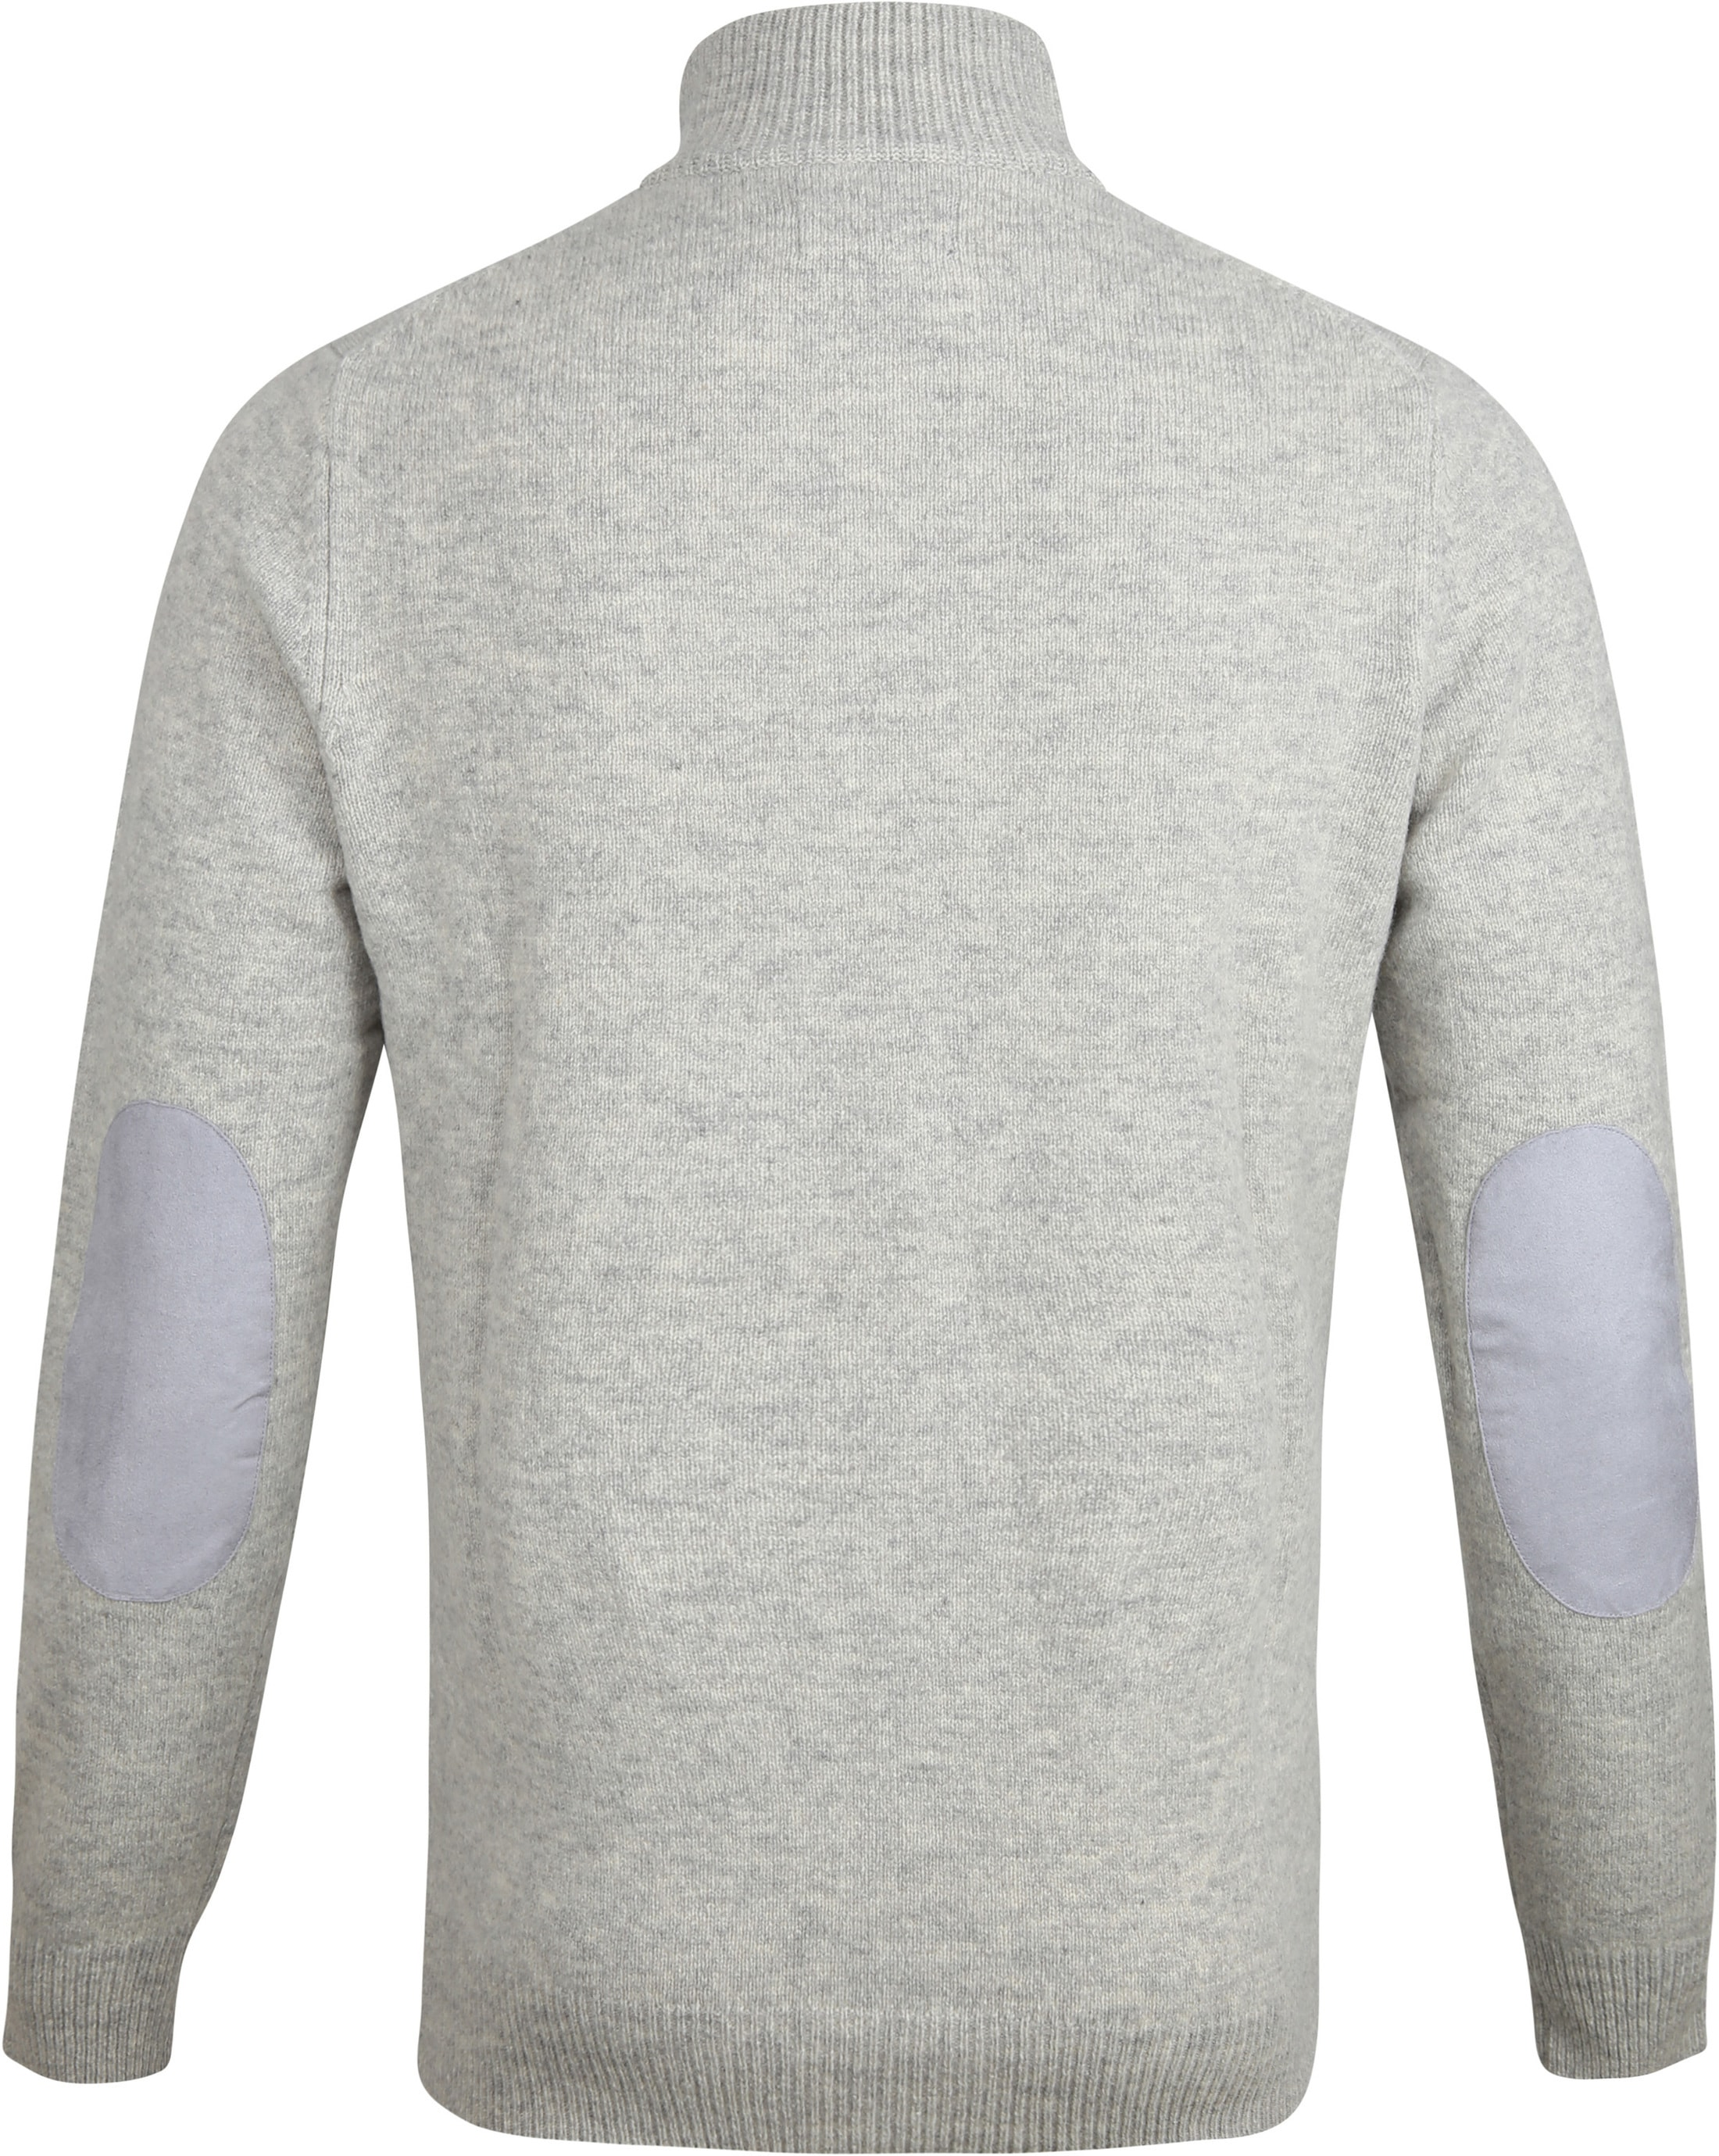 Barbour Sweater Wool Patch Grey foto 2